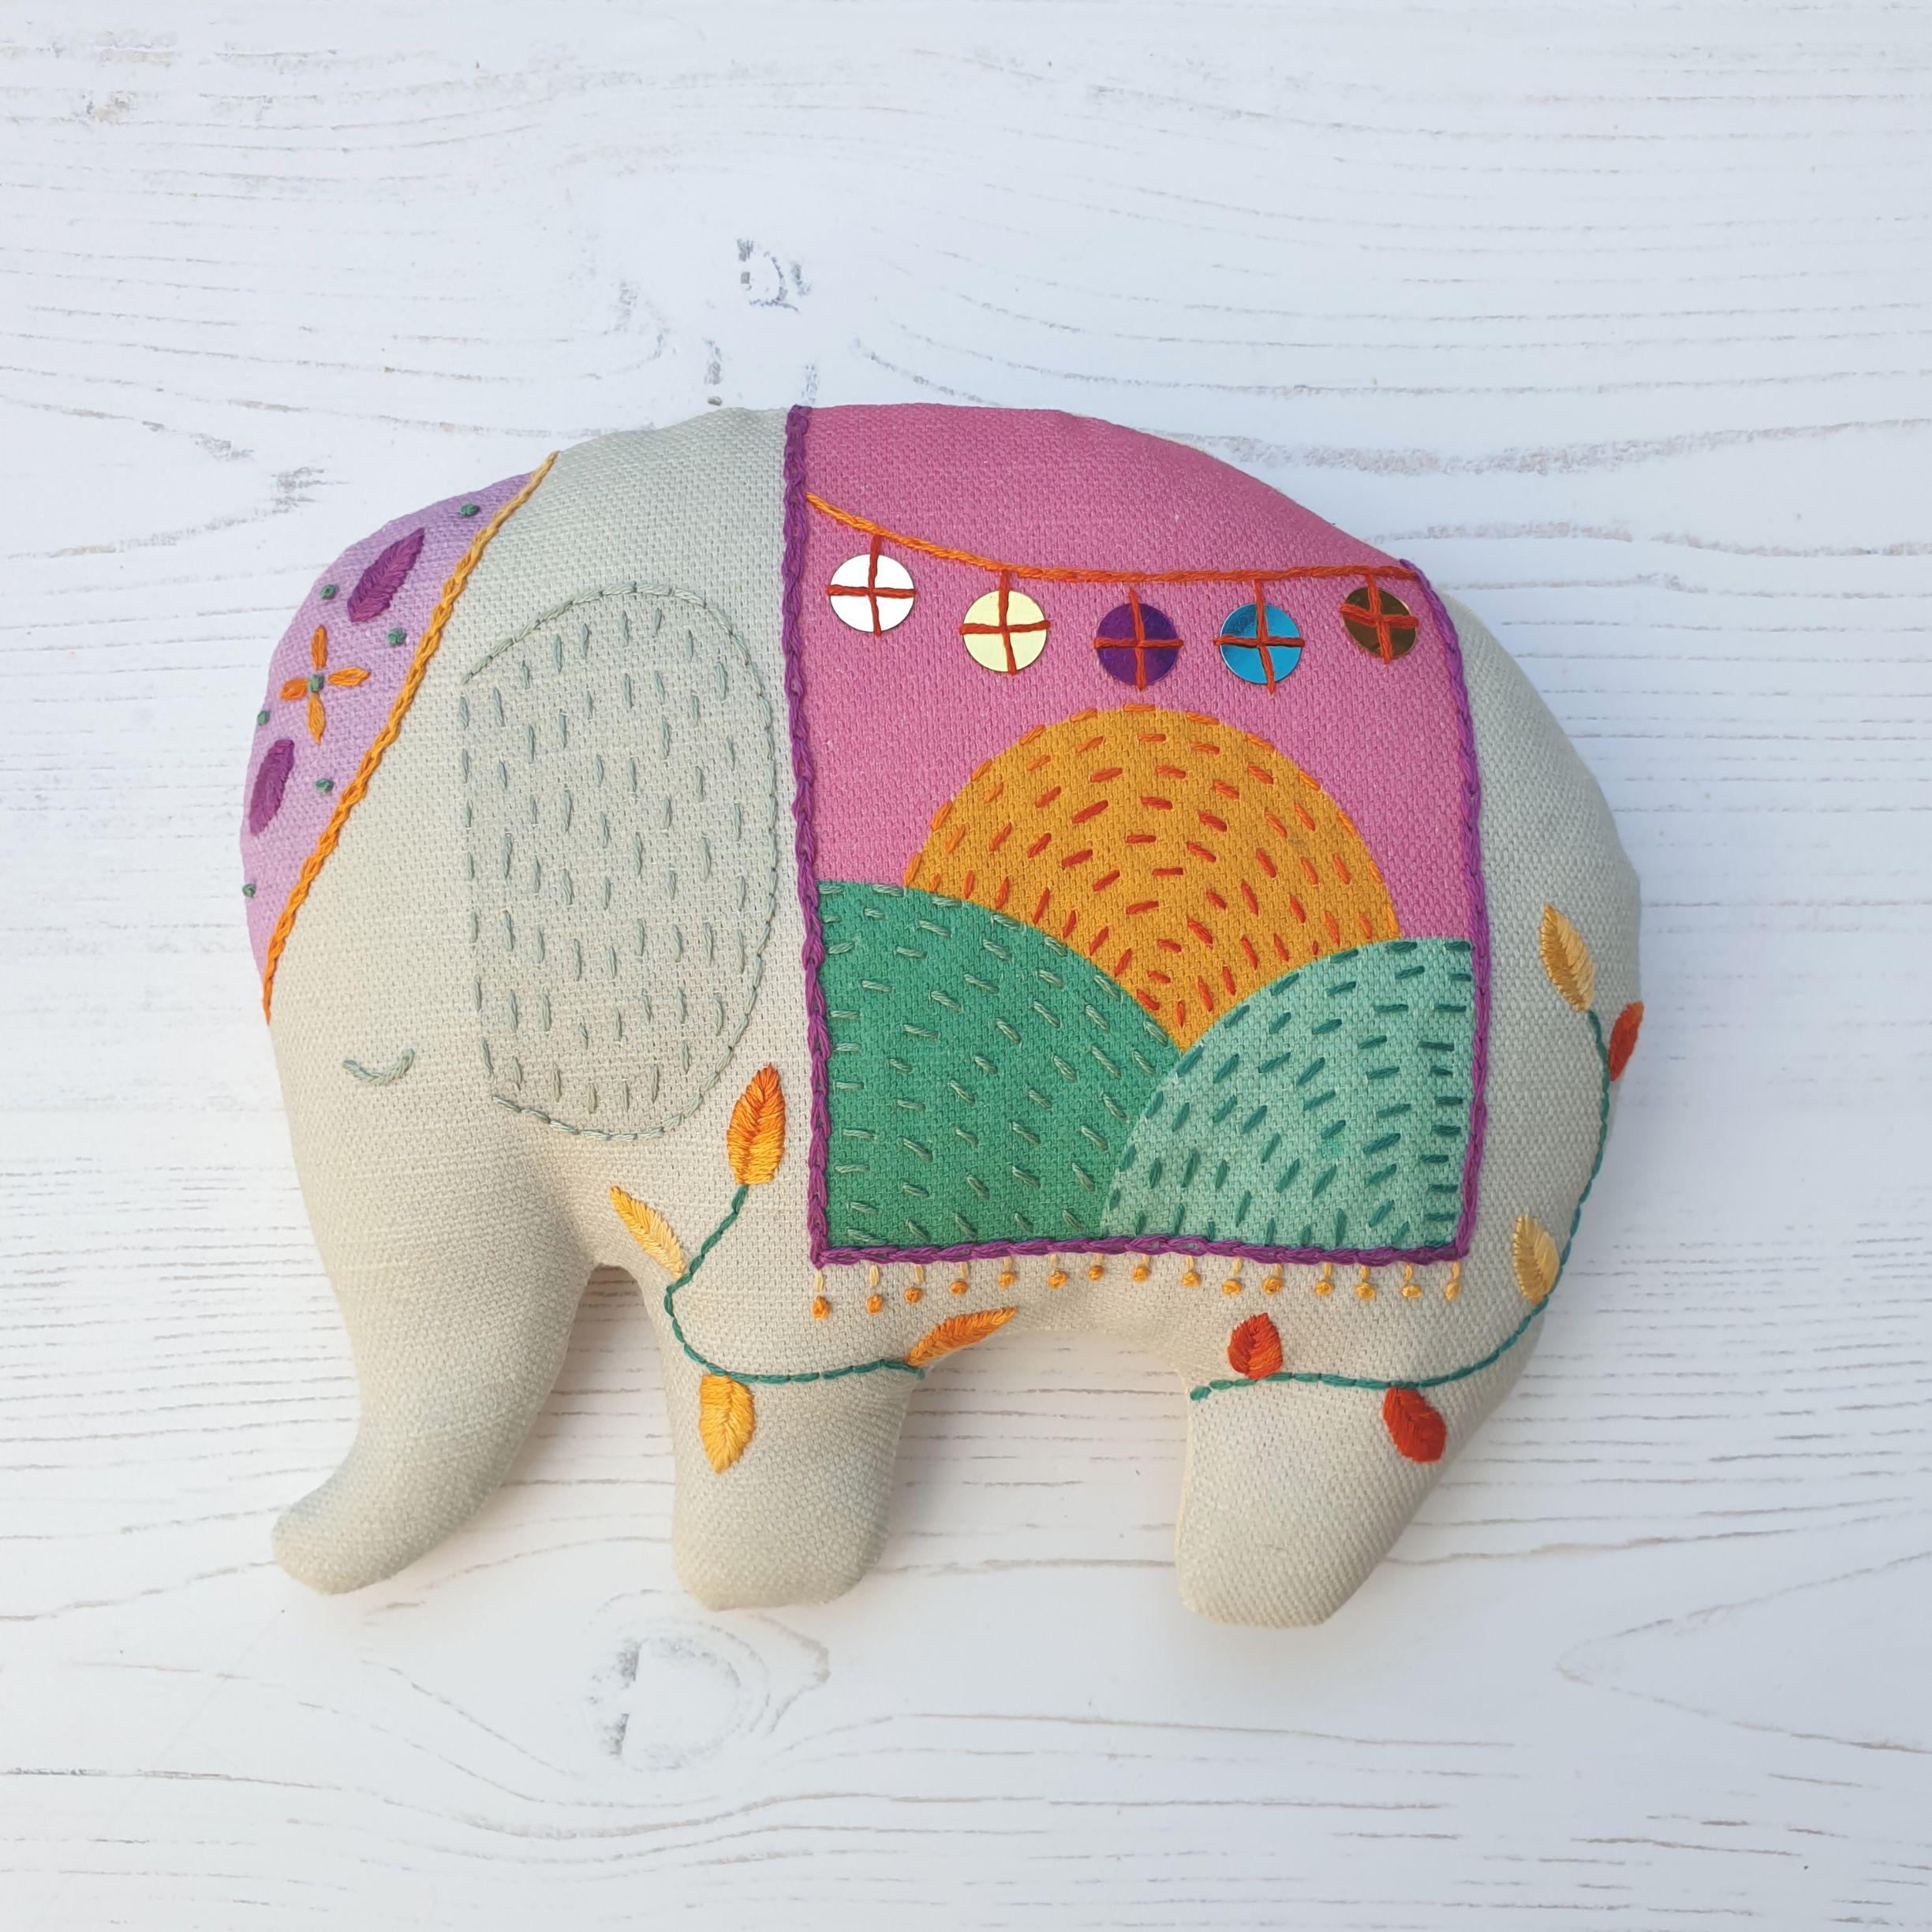 The embroidered elephant sewing kit by Stitch Club